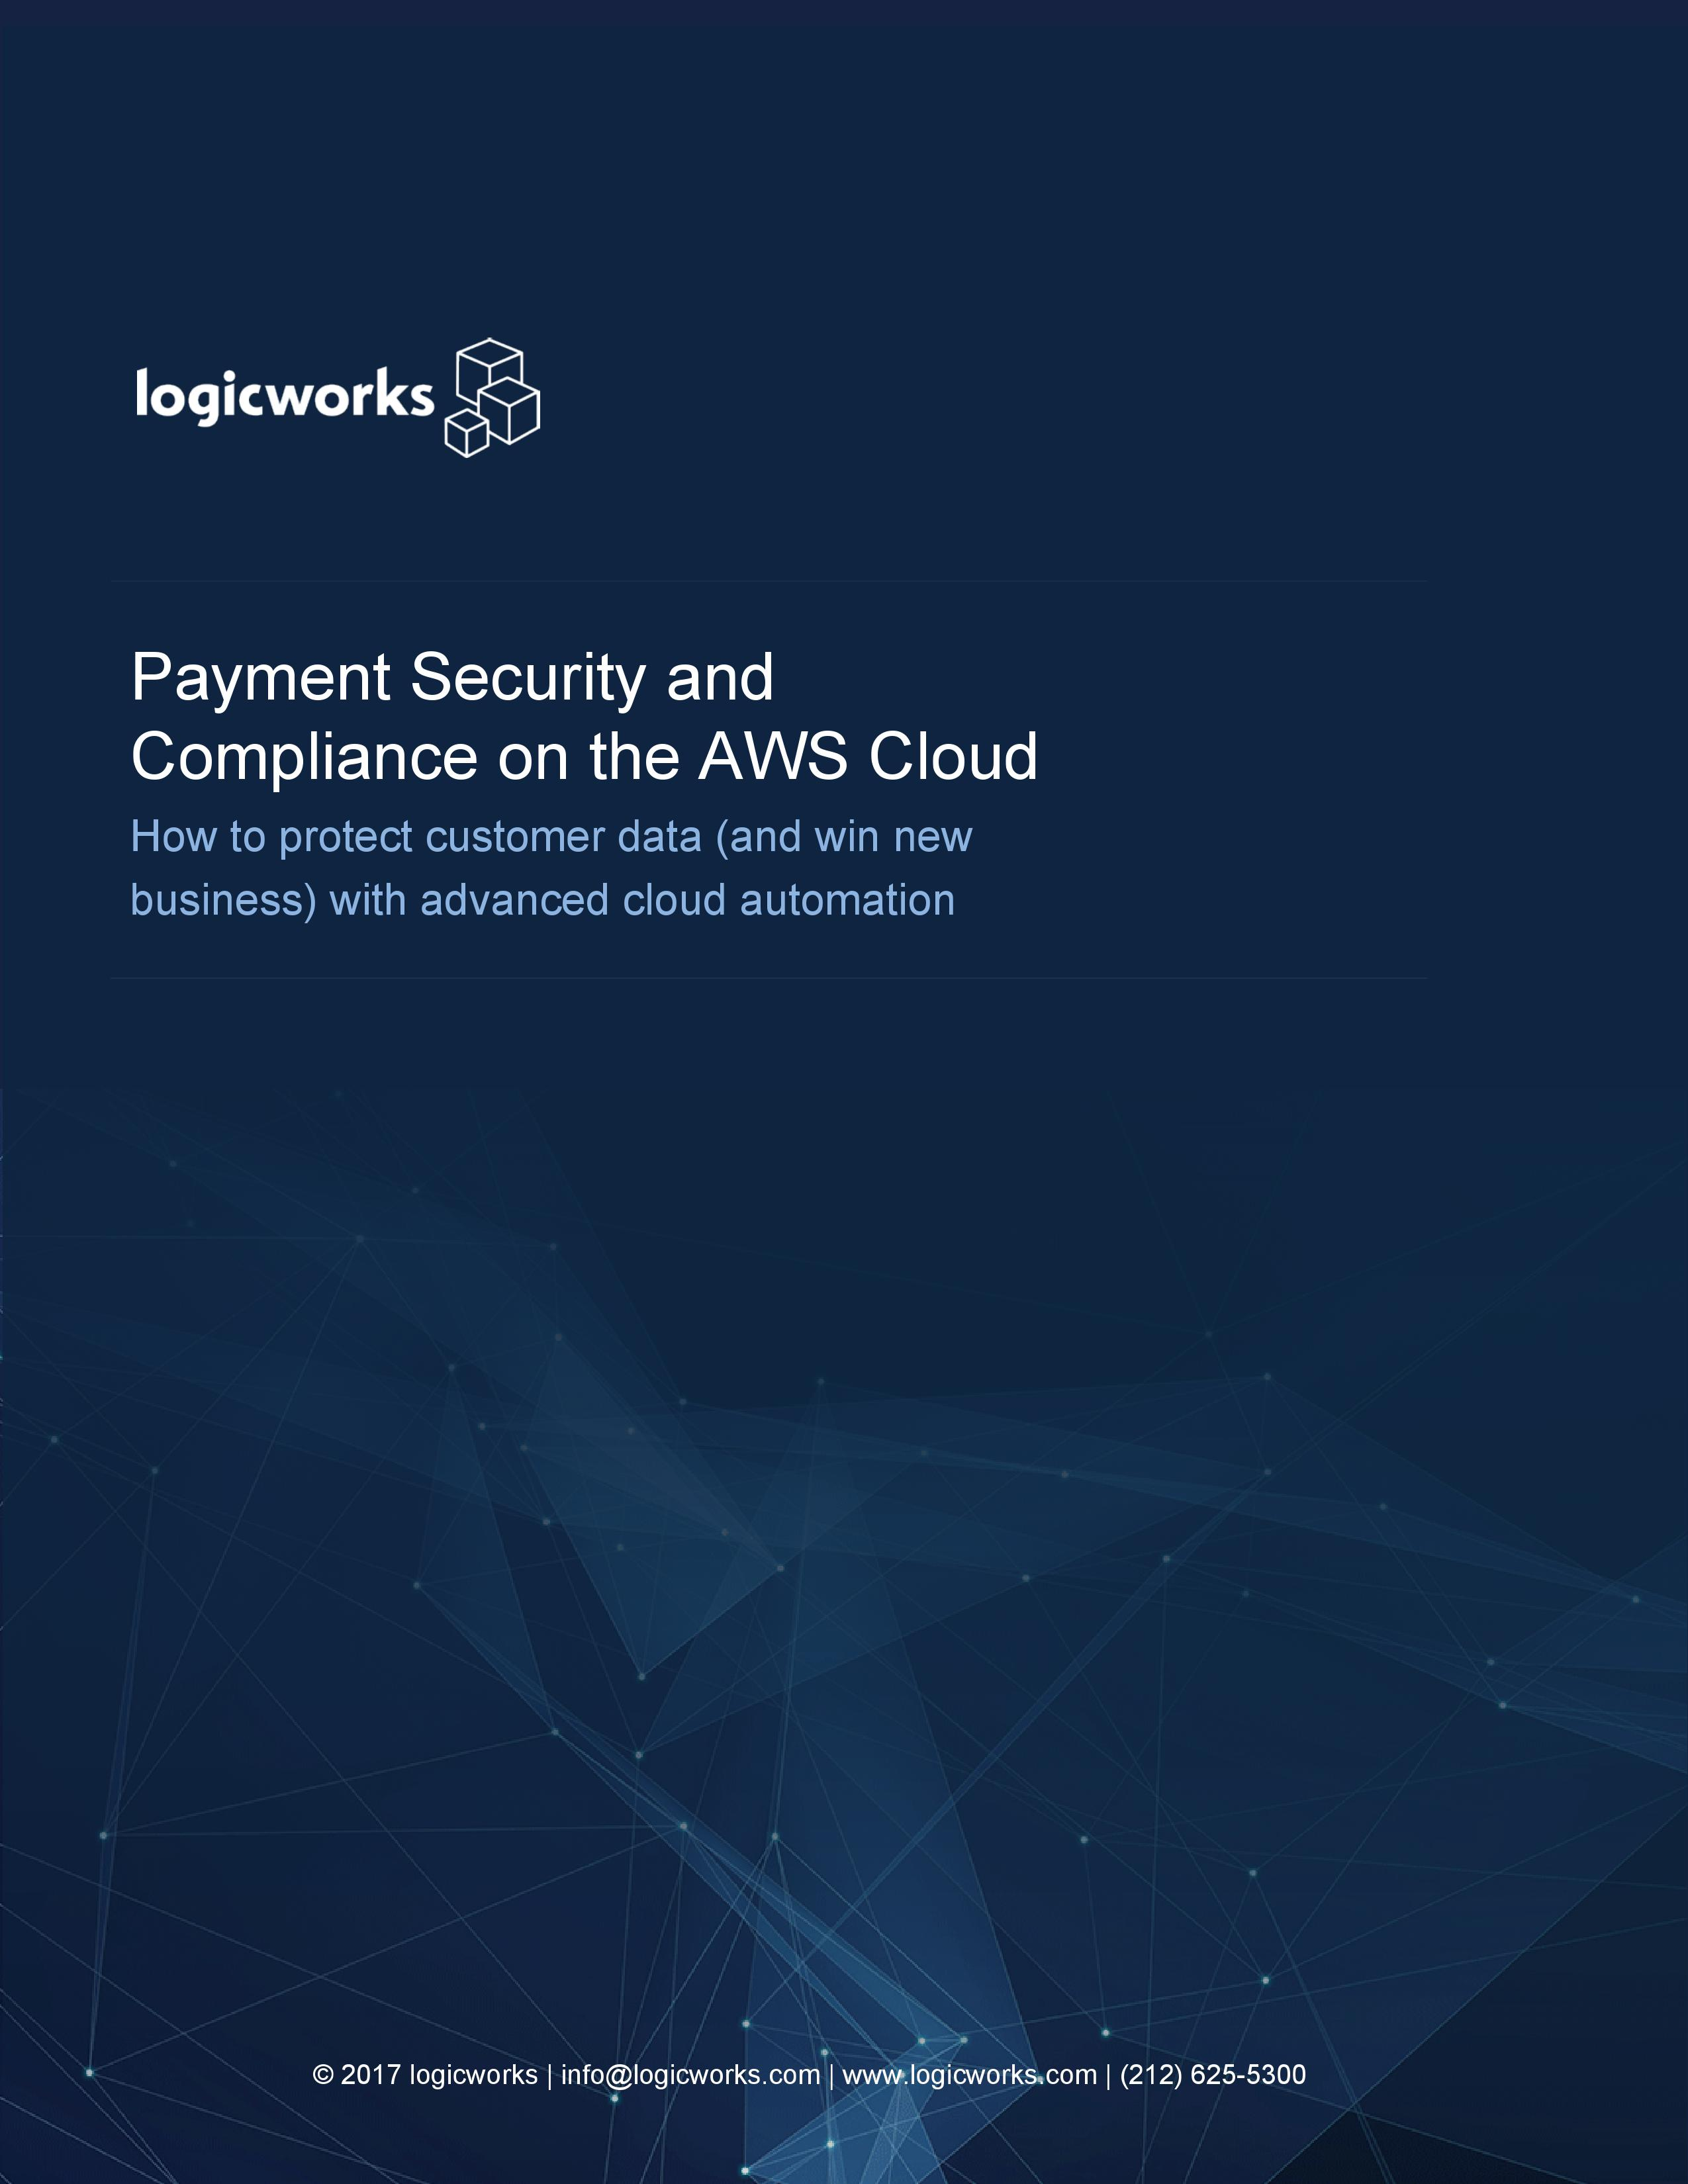 Payment Security and Compliance on the AWS Cloud.jpg